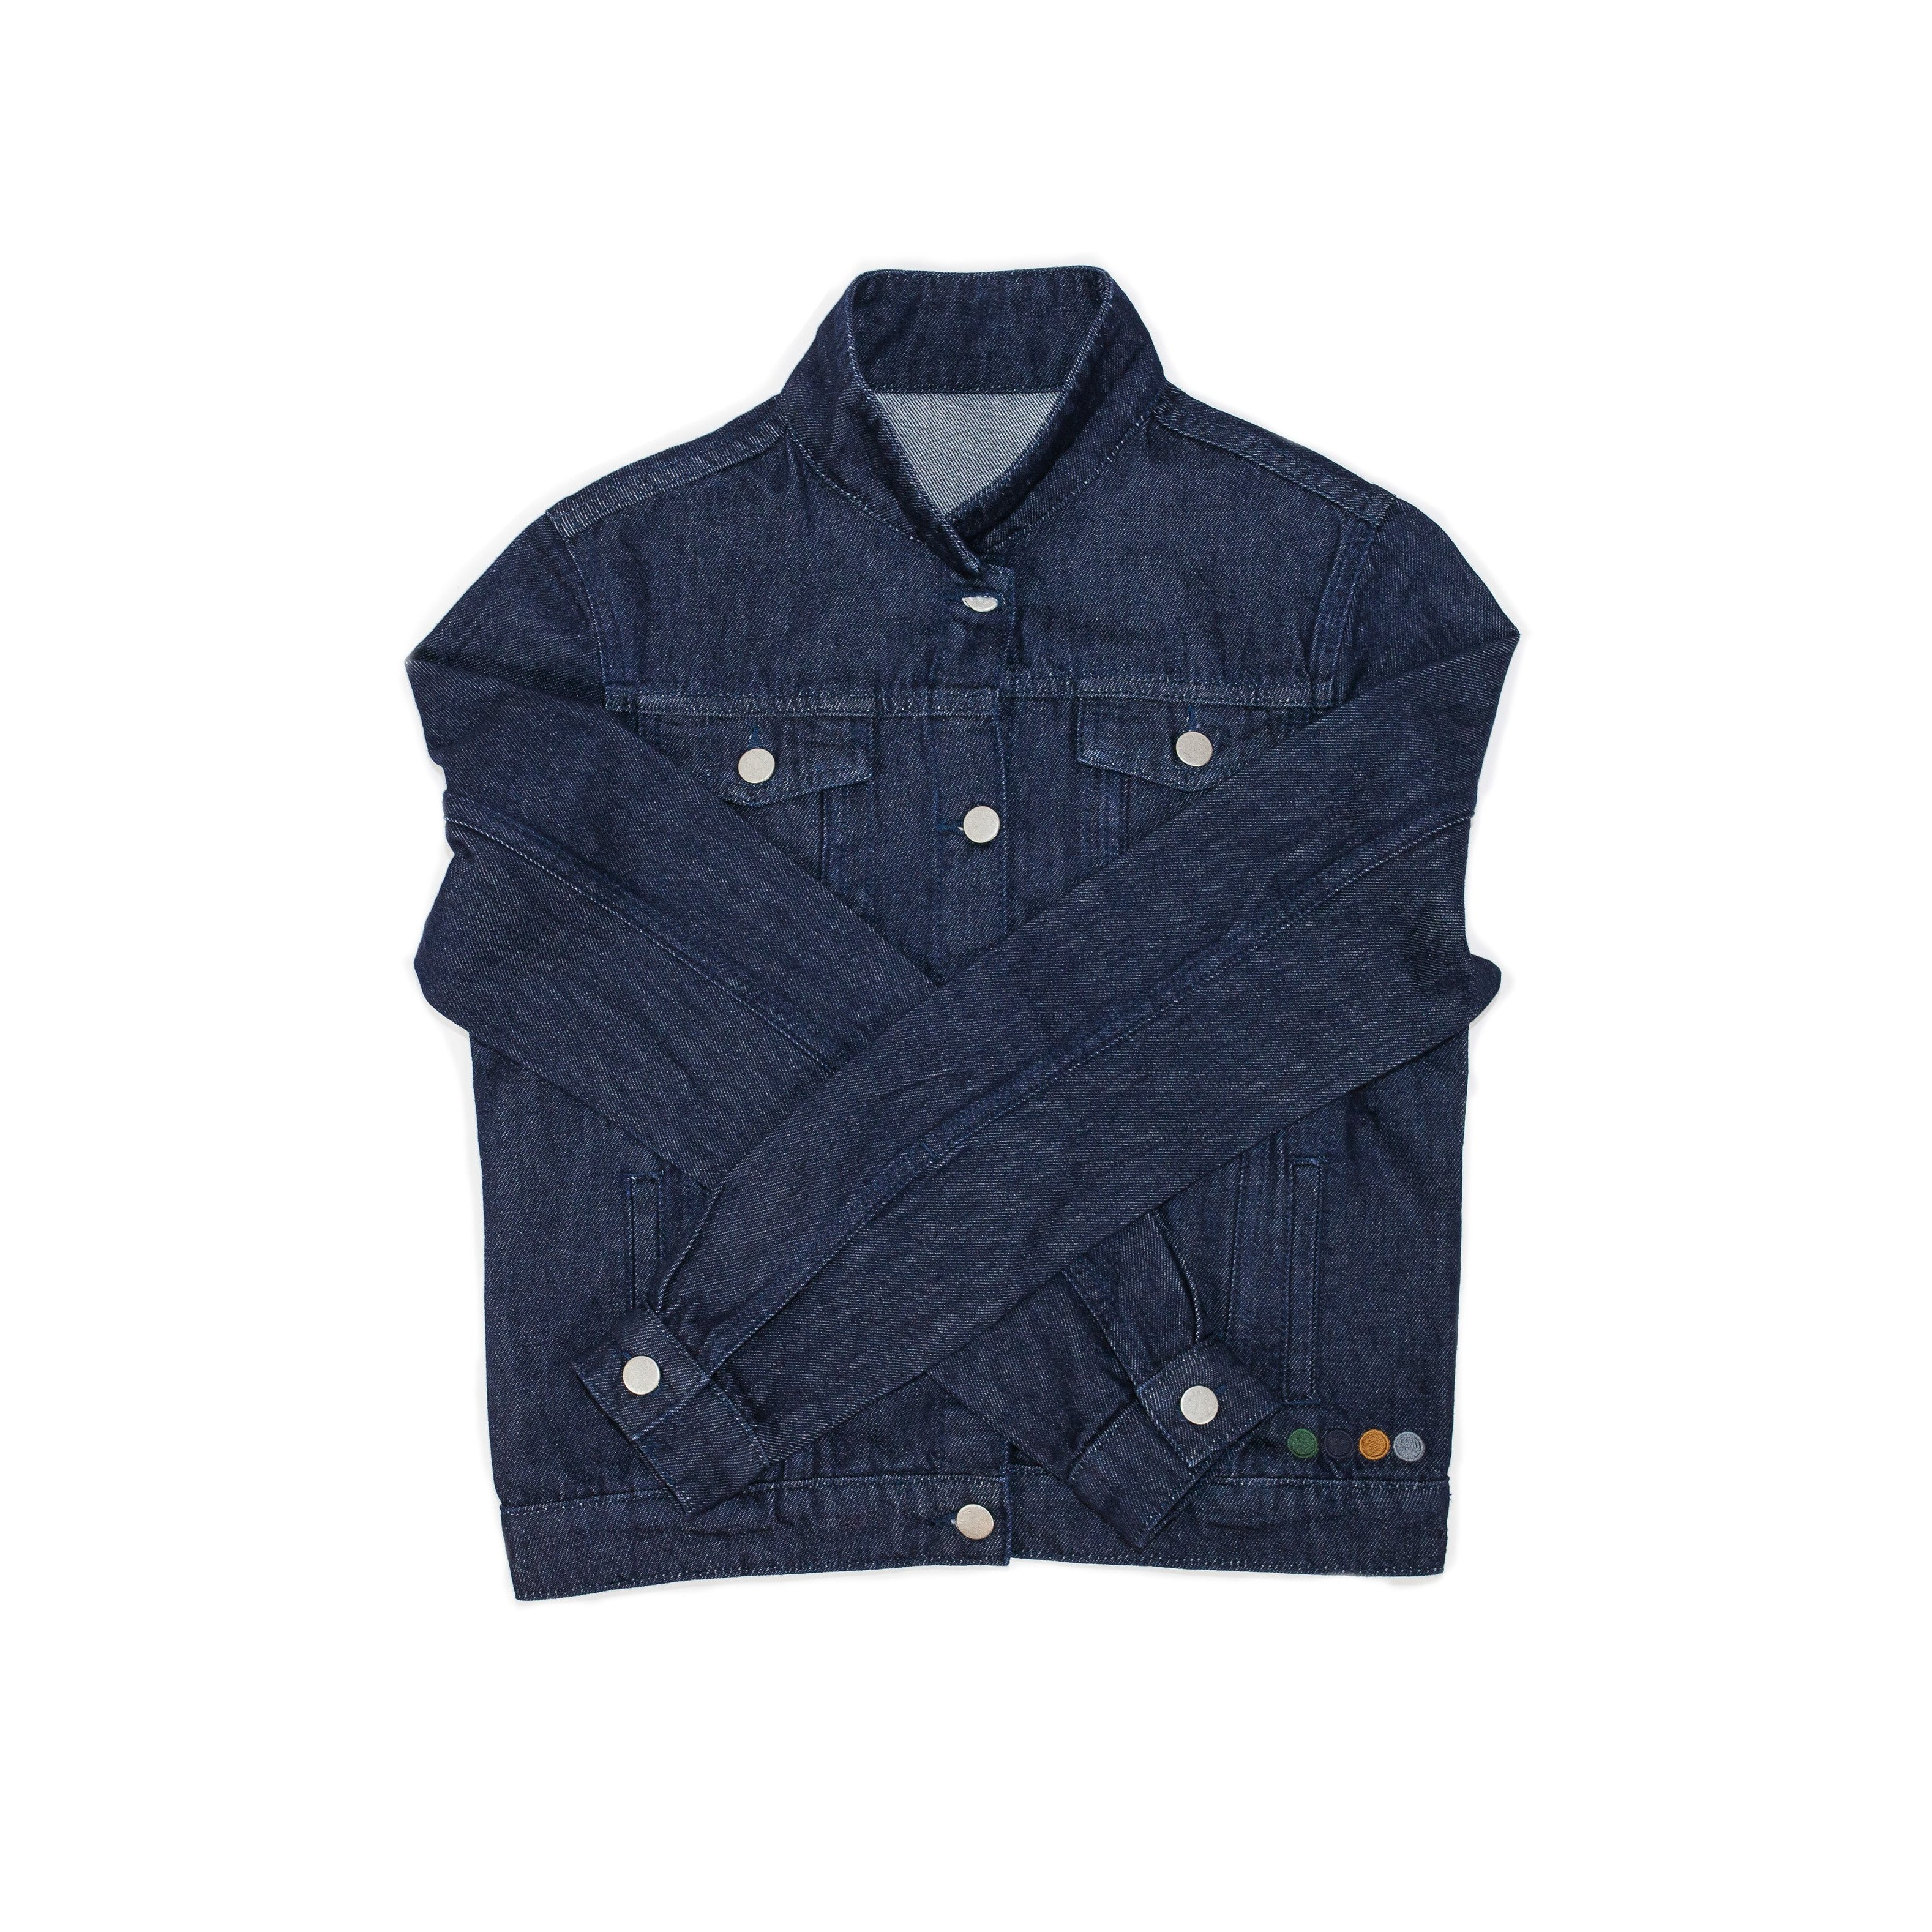 AGATHA WOMENS DENIM JACKET IN INDIGO.